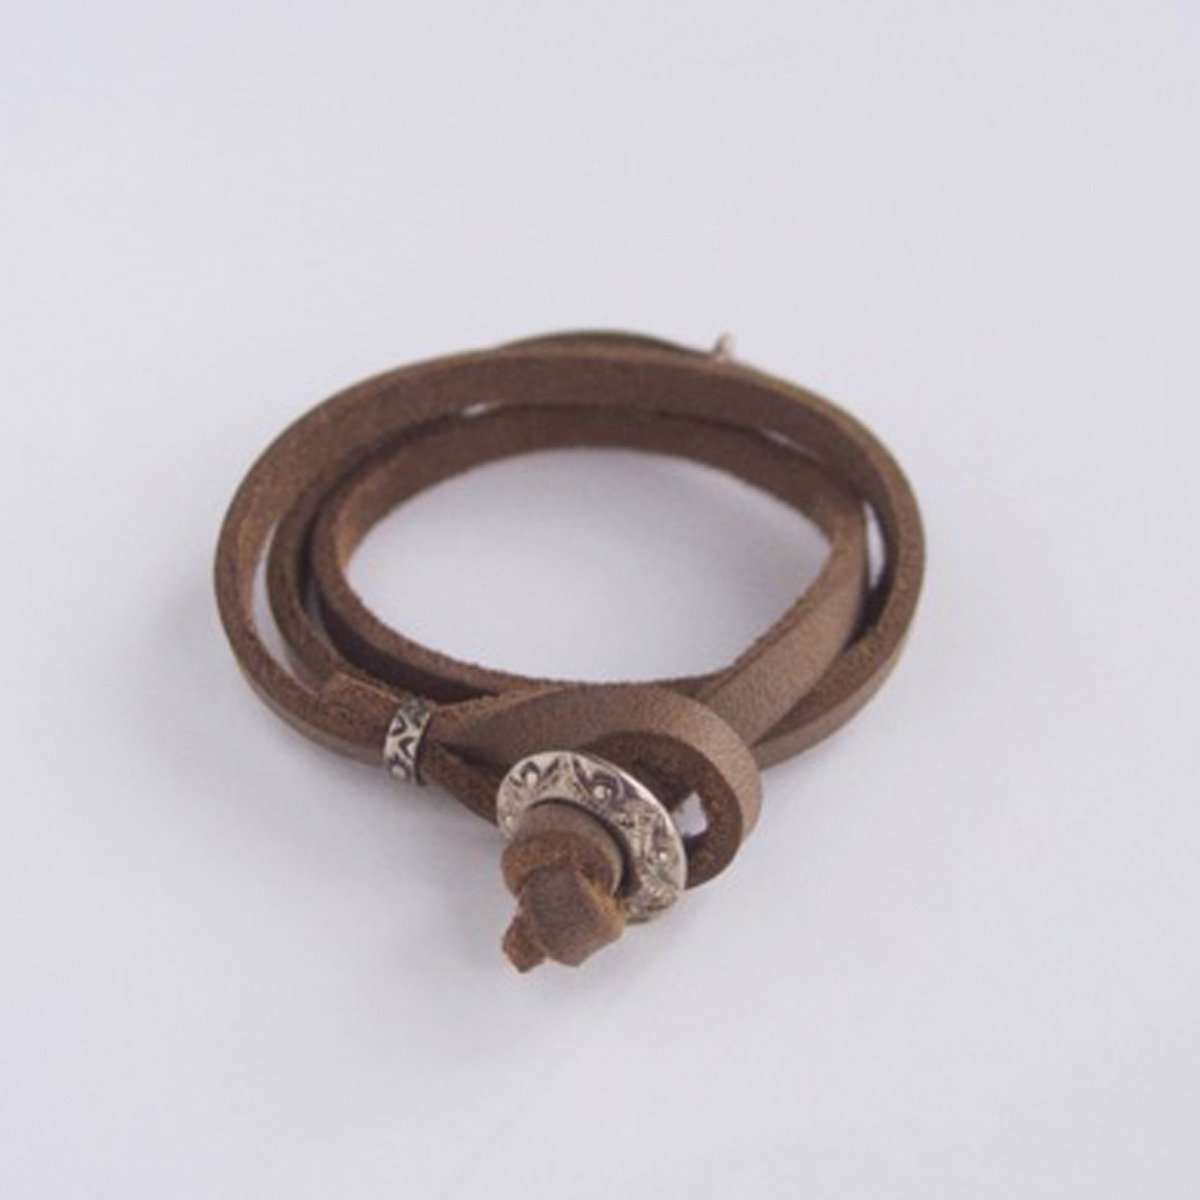 MOTO CONTEMPORARY NATIVE 3連LEATHER BRACELET (NATURAL)